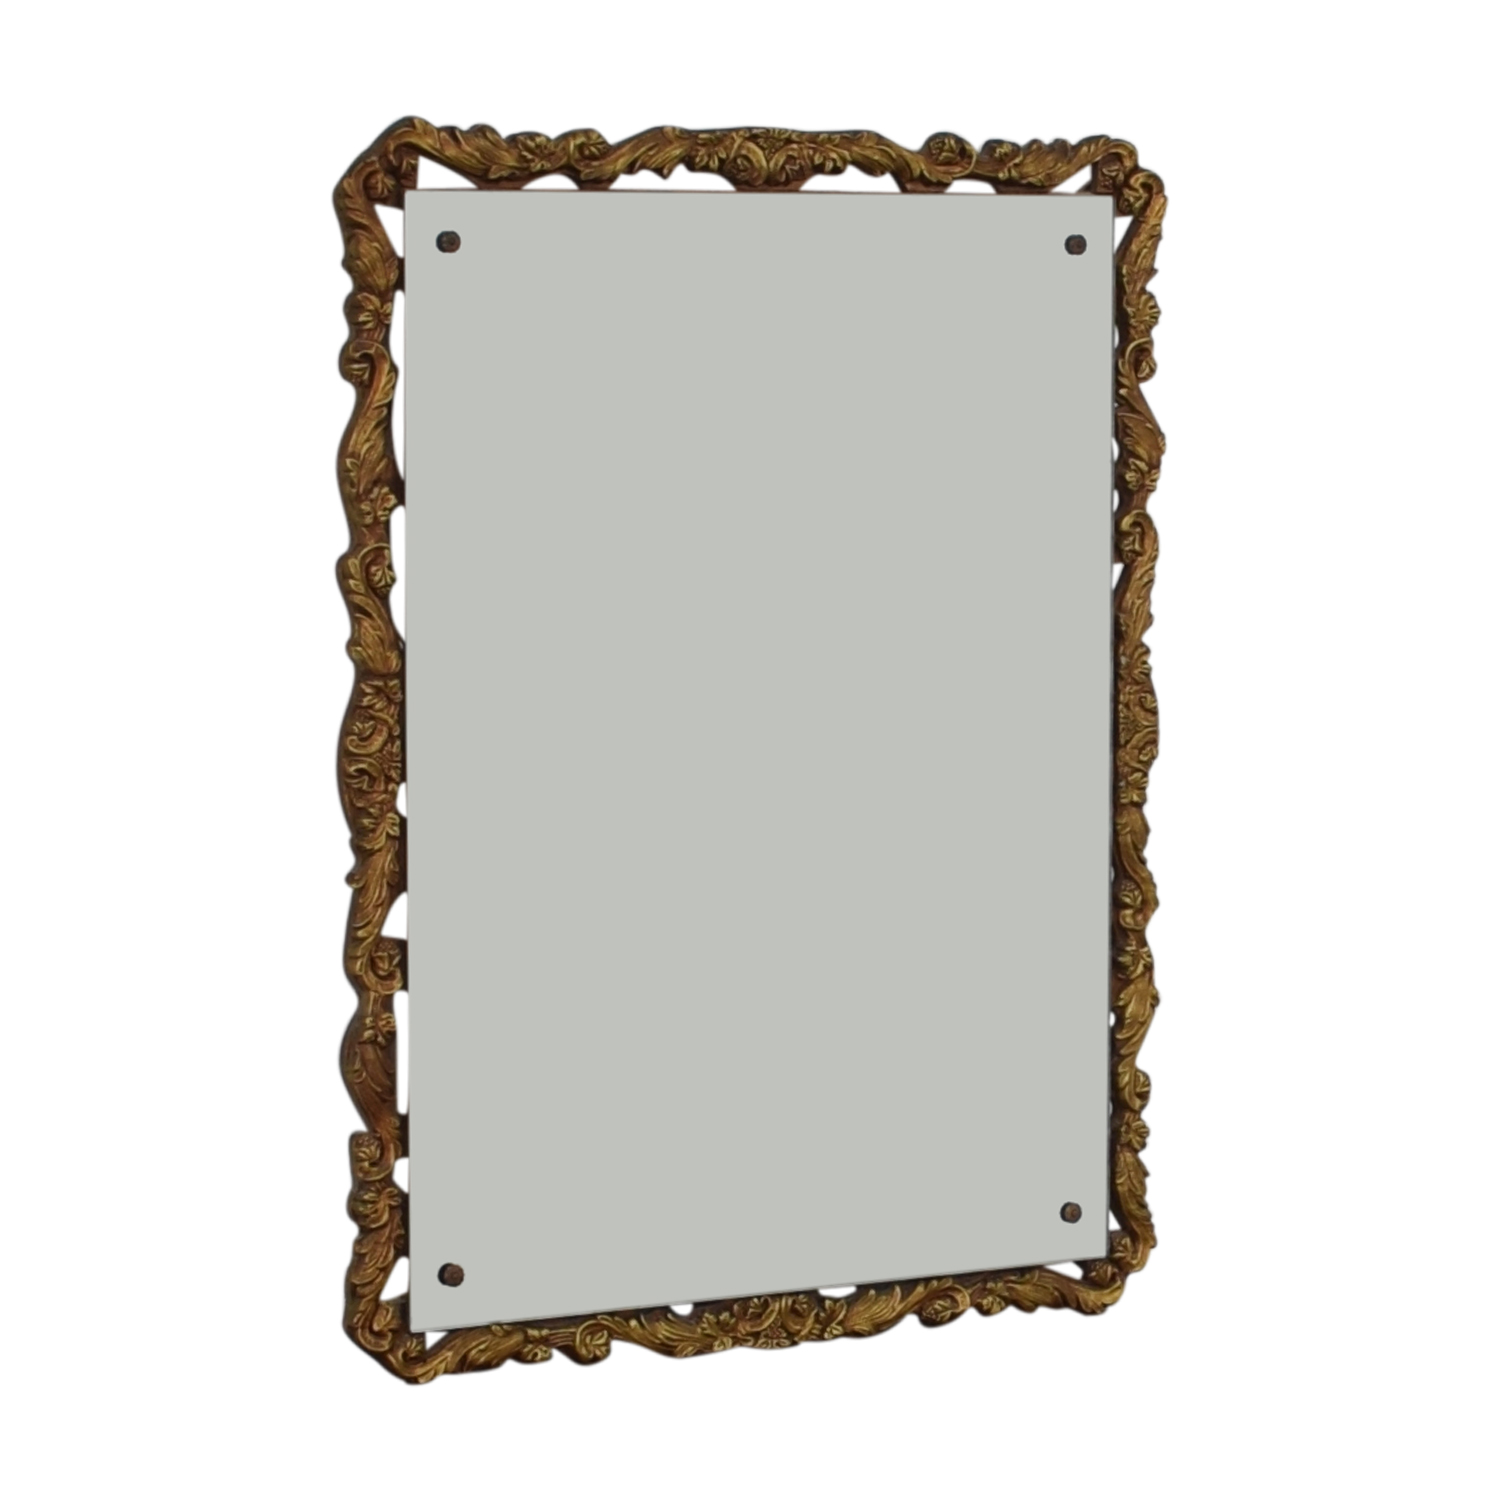 Distressed Gold Framed Wall Mirror gold